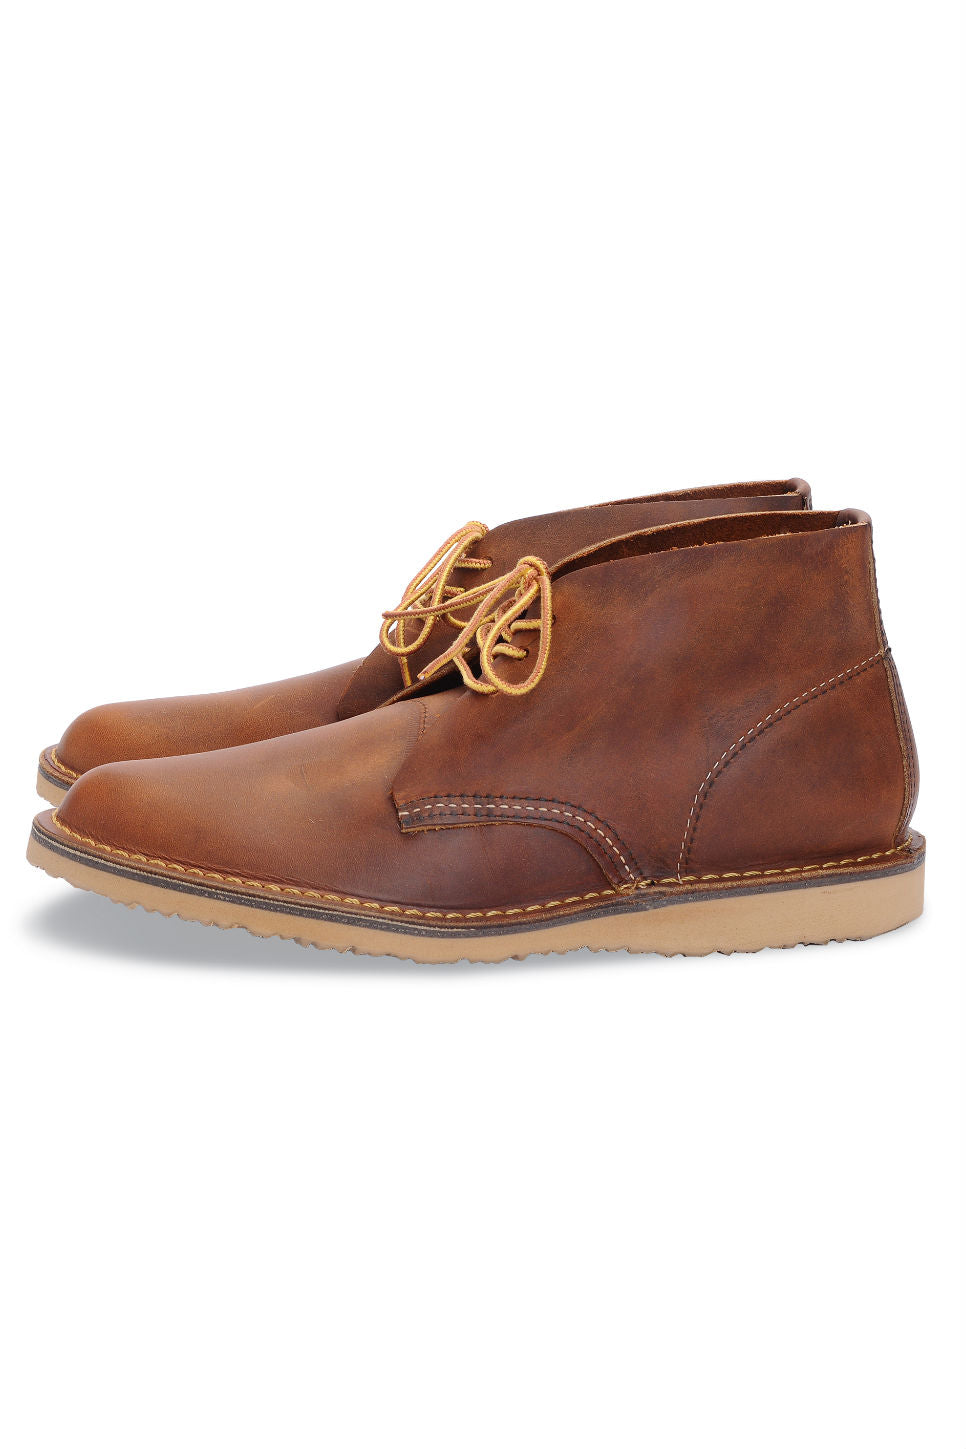 Red Wing Heritage - Weekender Chukka - Copper - Side